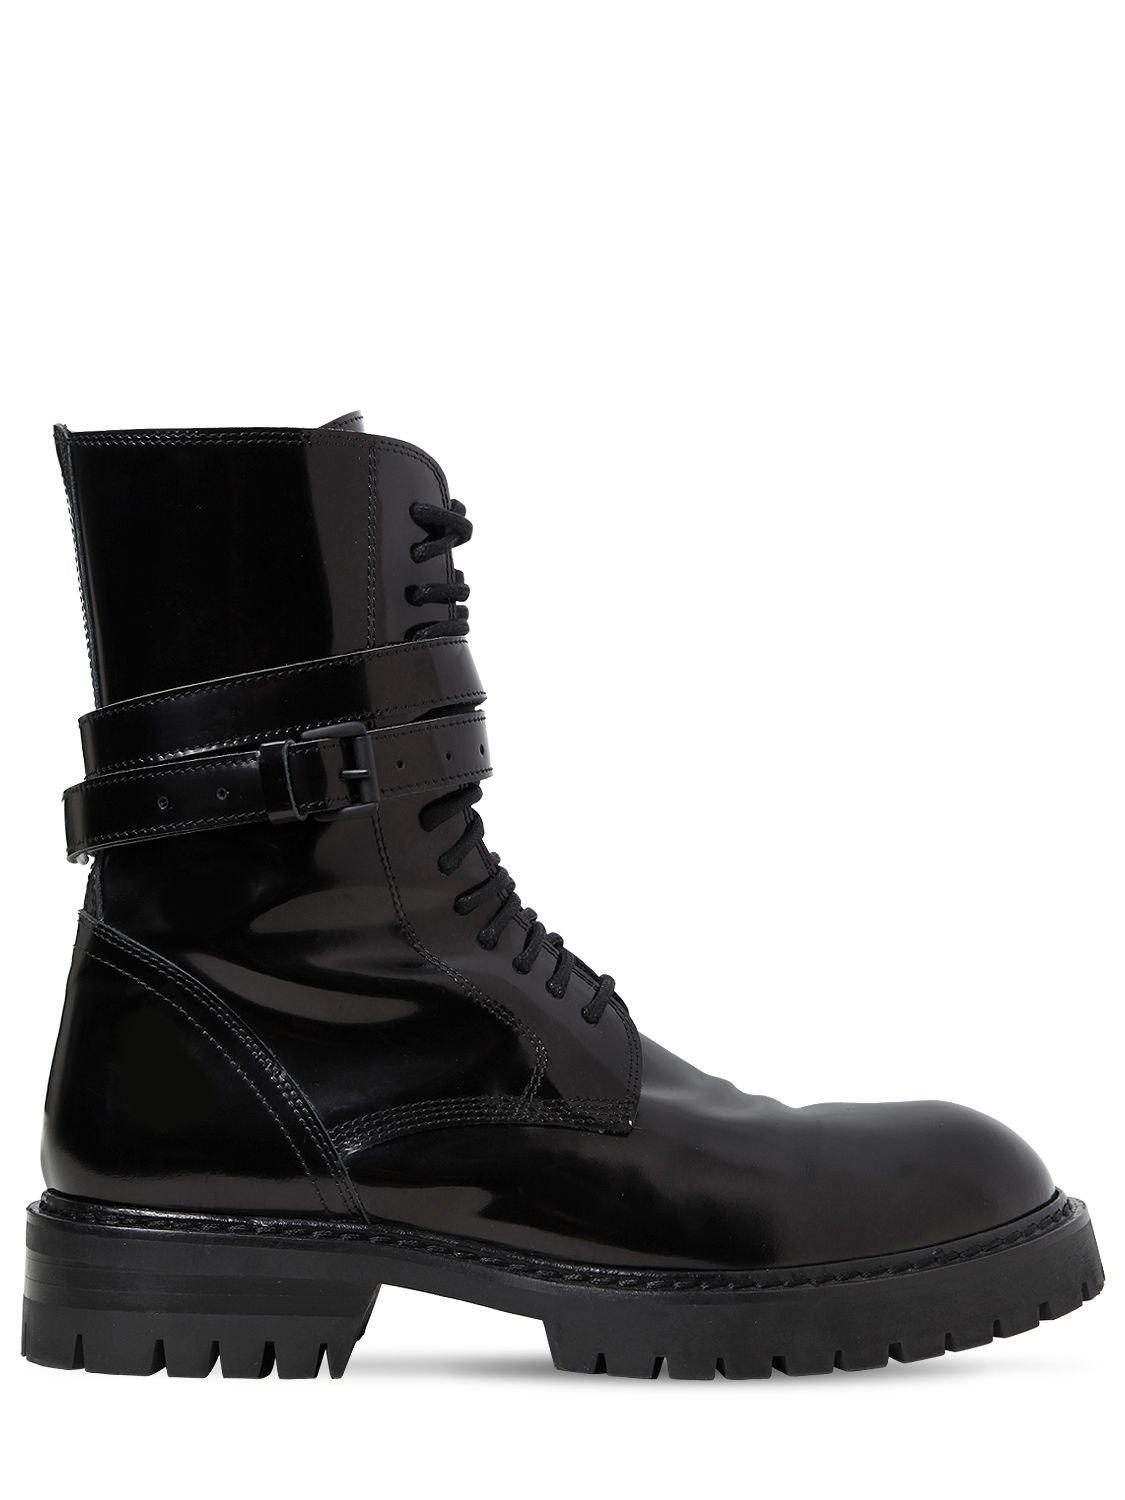 ANN DEMEULEMEESTER 30MM POLISHED LEATHER COMBAT BOOTS xx5x7seG